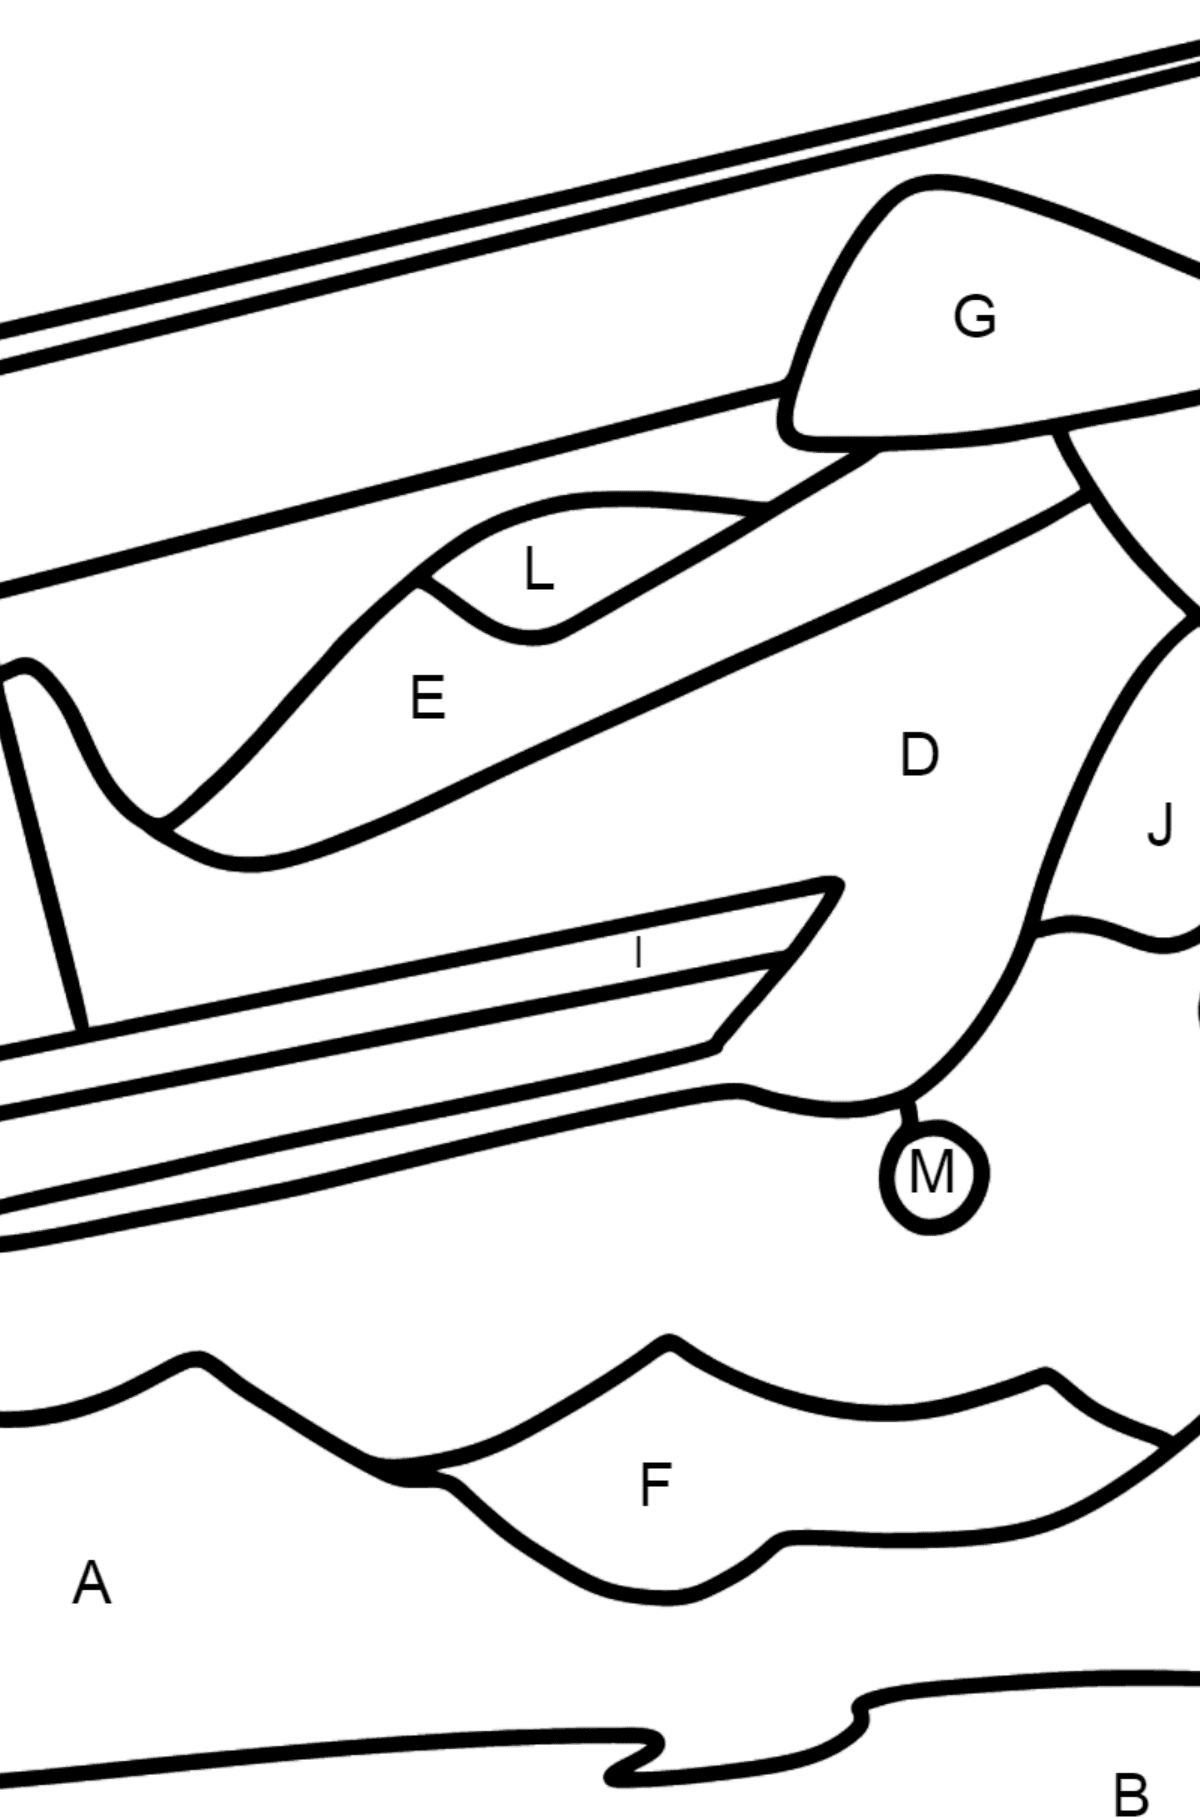 Coloring page - Light Airplane flies Over Mountains - Coloring by Letters for Kids